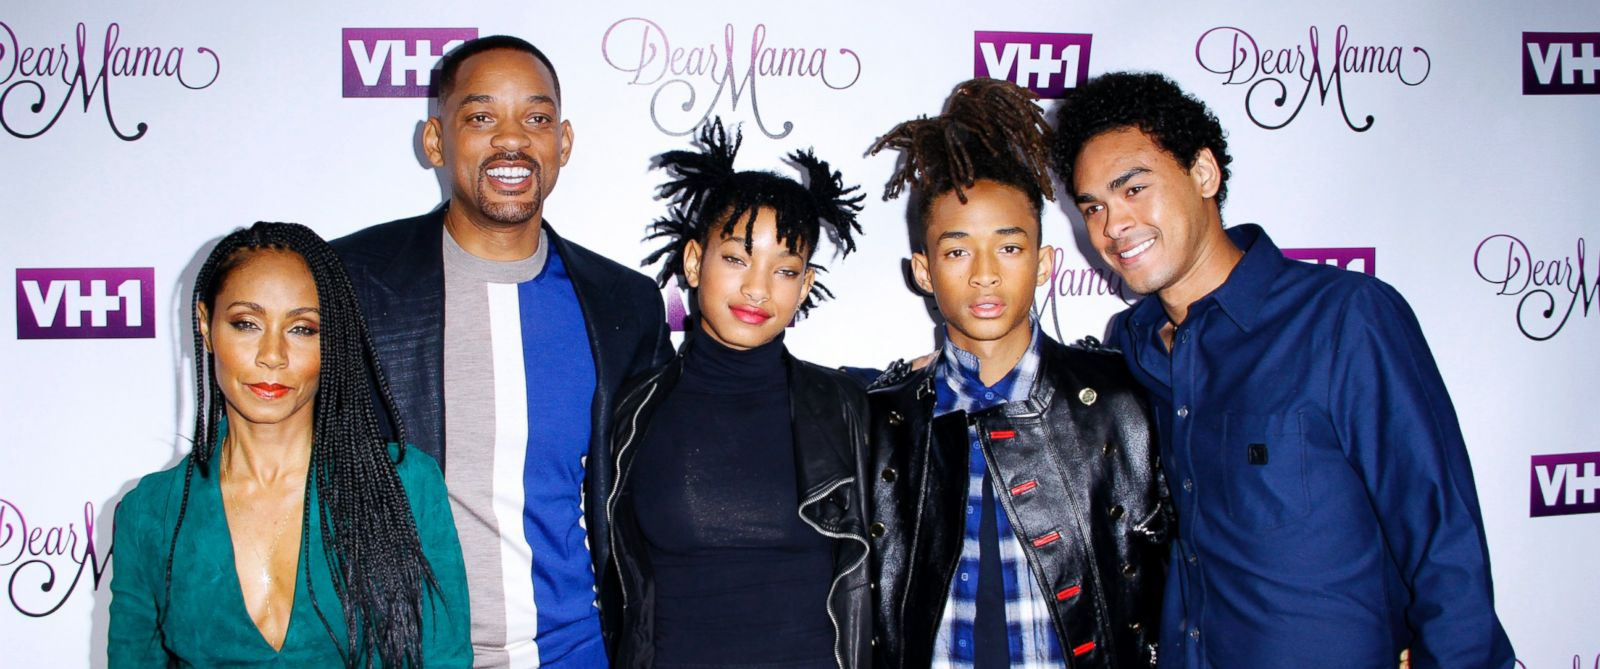 "PHOTO: Jada Pinkett Smith, Will Smith, Willow Smith, Jaden Smith and Trey Smith attend the VH1 ""Dear Mama"" taping at St. Bartholomews Church on May 3, 2016 in New York."